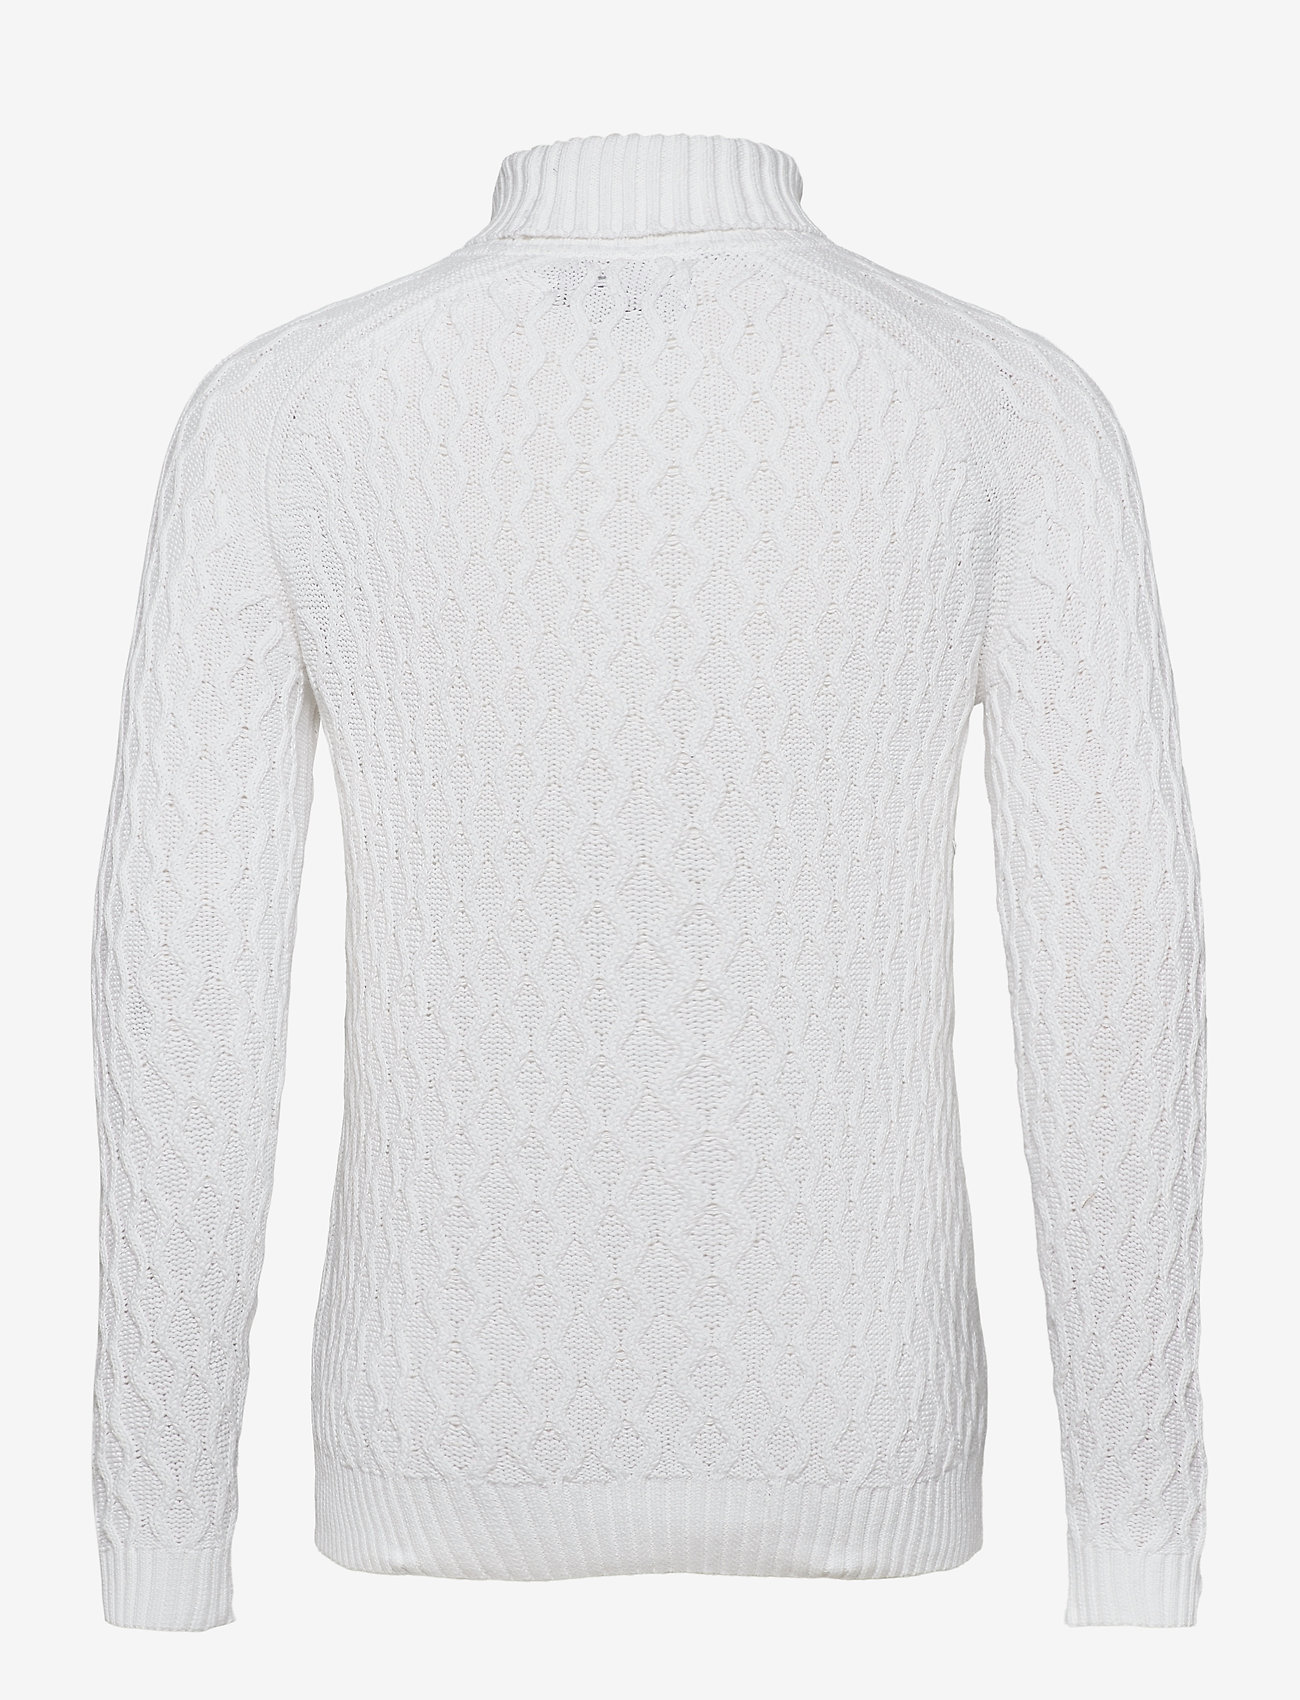 Blend - Pullover - basic gebreide truien - bright white - 1